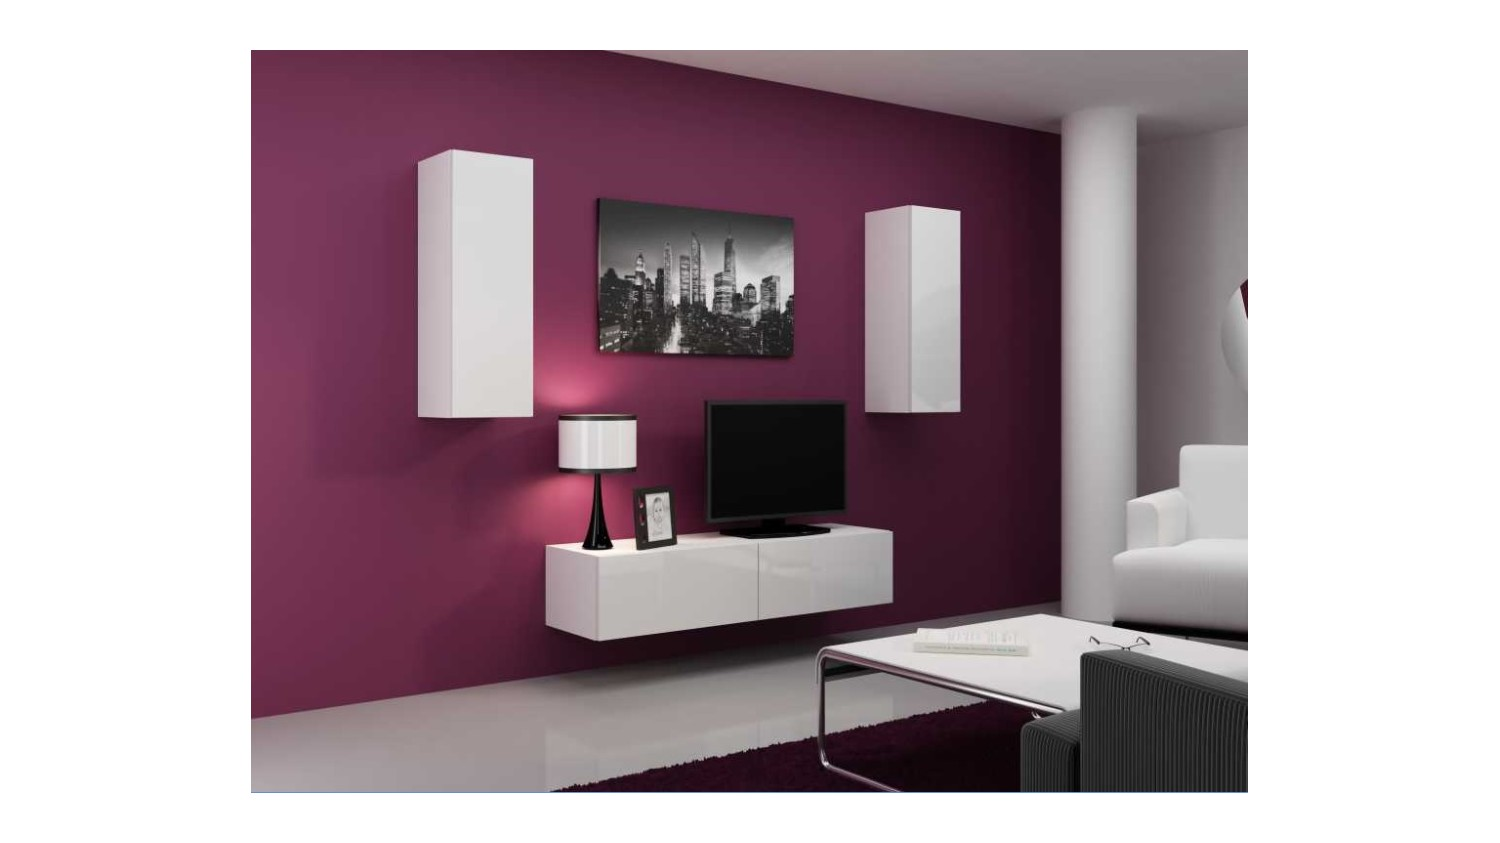 ikea meuble tv en coin royal sofa id e de canap et meuble maison. Black Bedroom Furniture Sets. Home Design Ideas